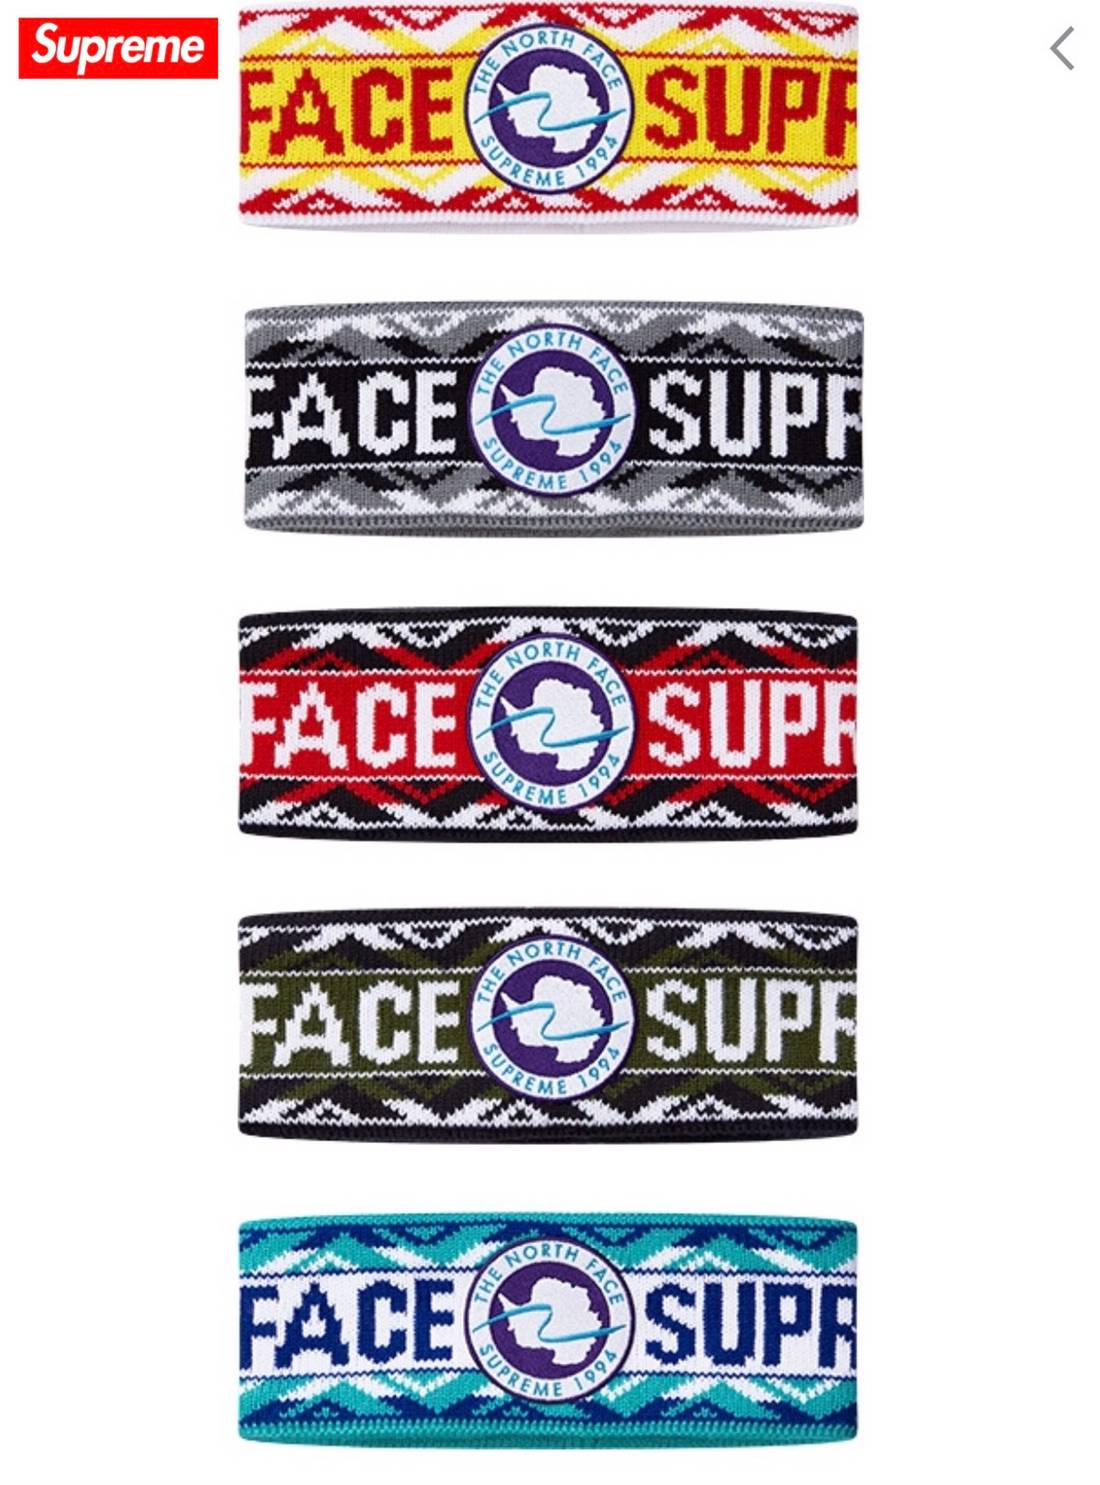 Supreme Supreme X The North Face Headband Size One Size